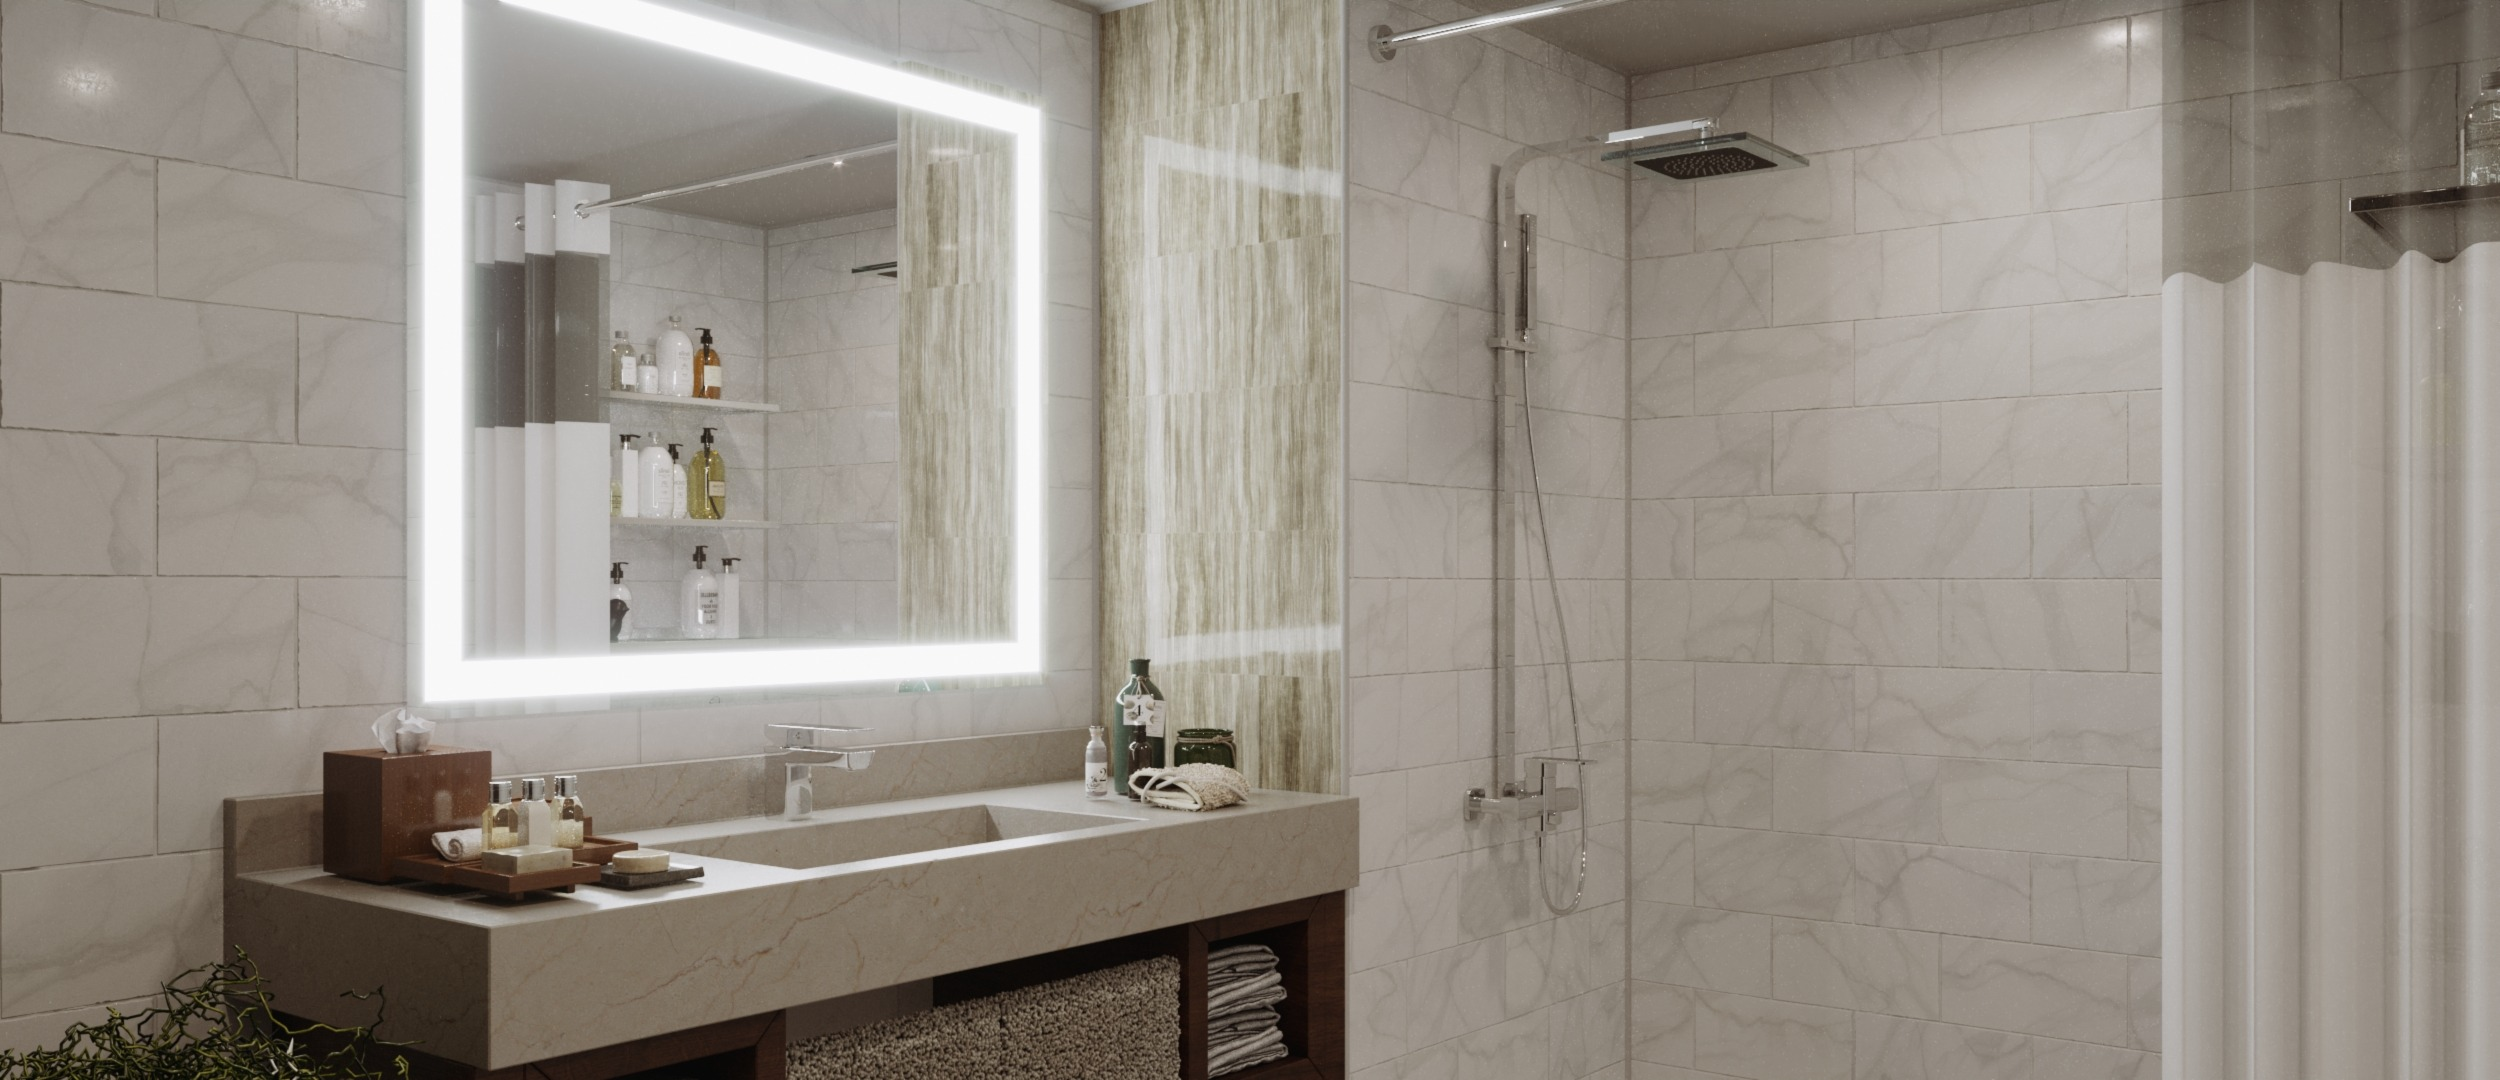 Extra large mirrors with LED light